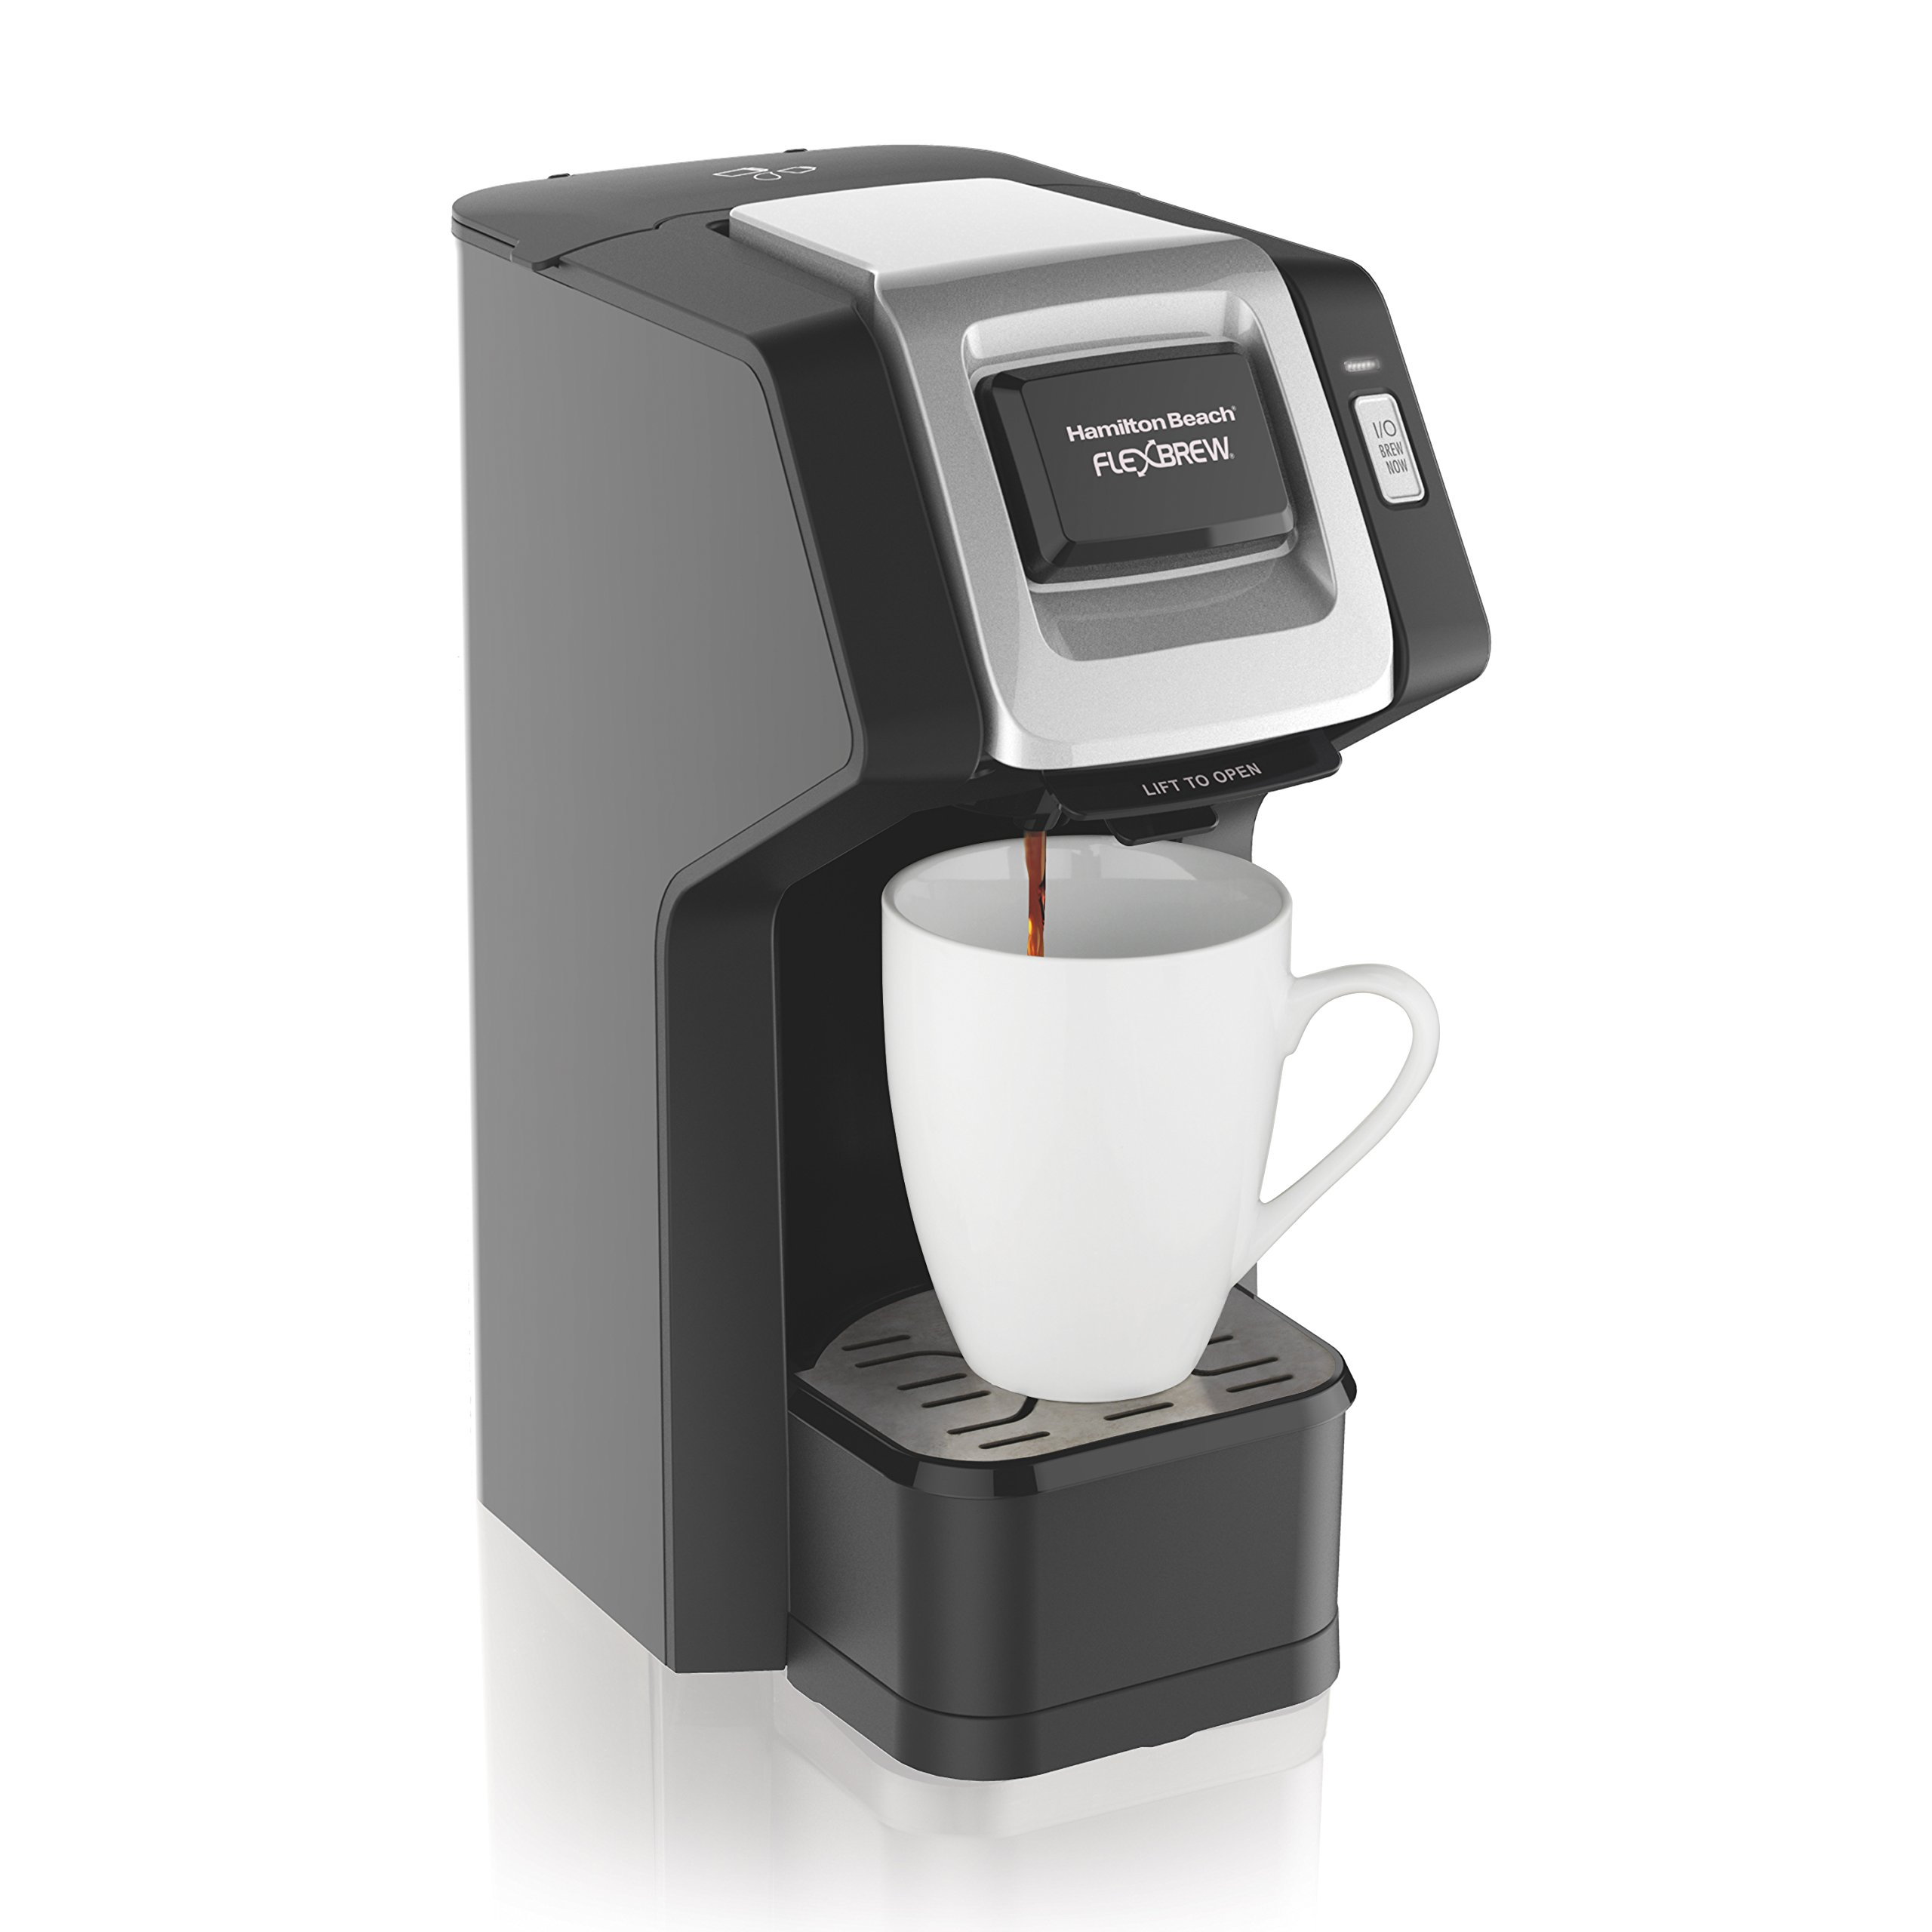 Hamilton Beach (49974) Single Serve Coffee Maker,Compatible withK-Cup Packs and Ground Coffee, Flexbrew, Black by Hamilton Beach (Image #1)